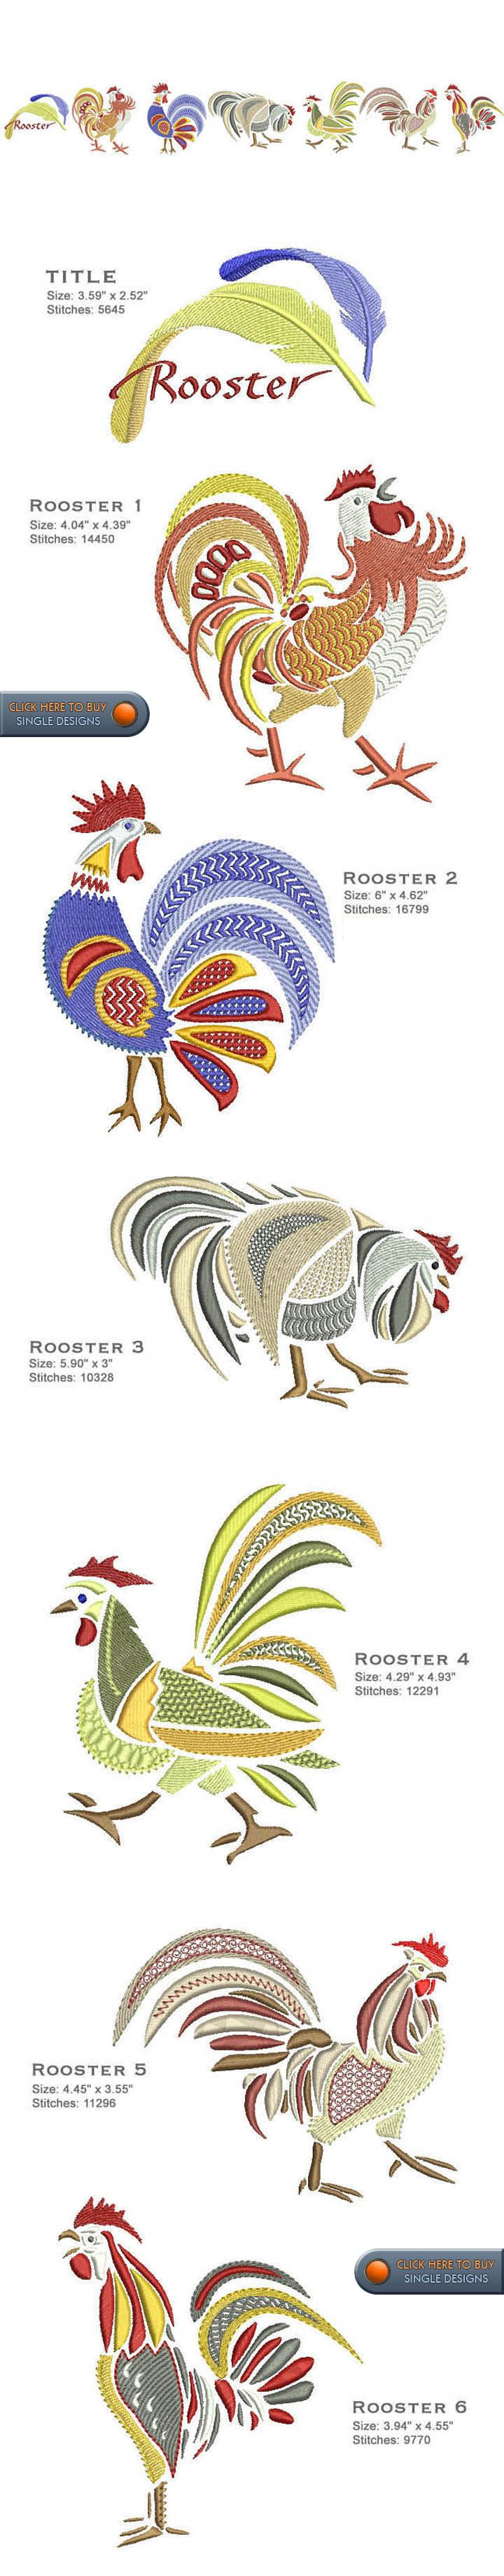 ROOSTERS Embroidery Designs Free Embroidery Design Patterns Applique